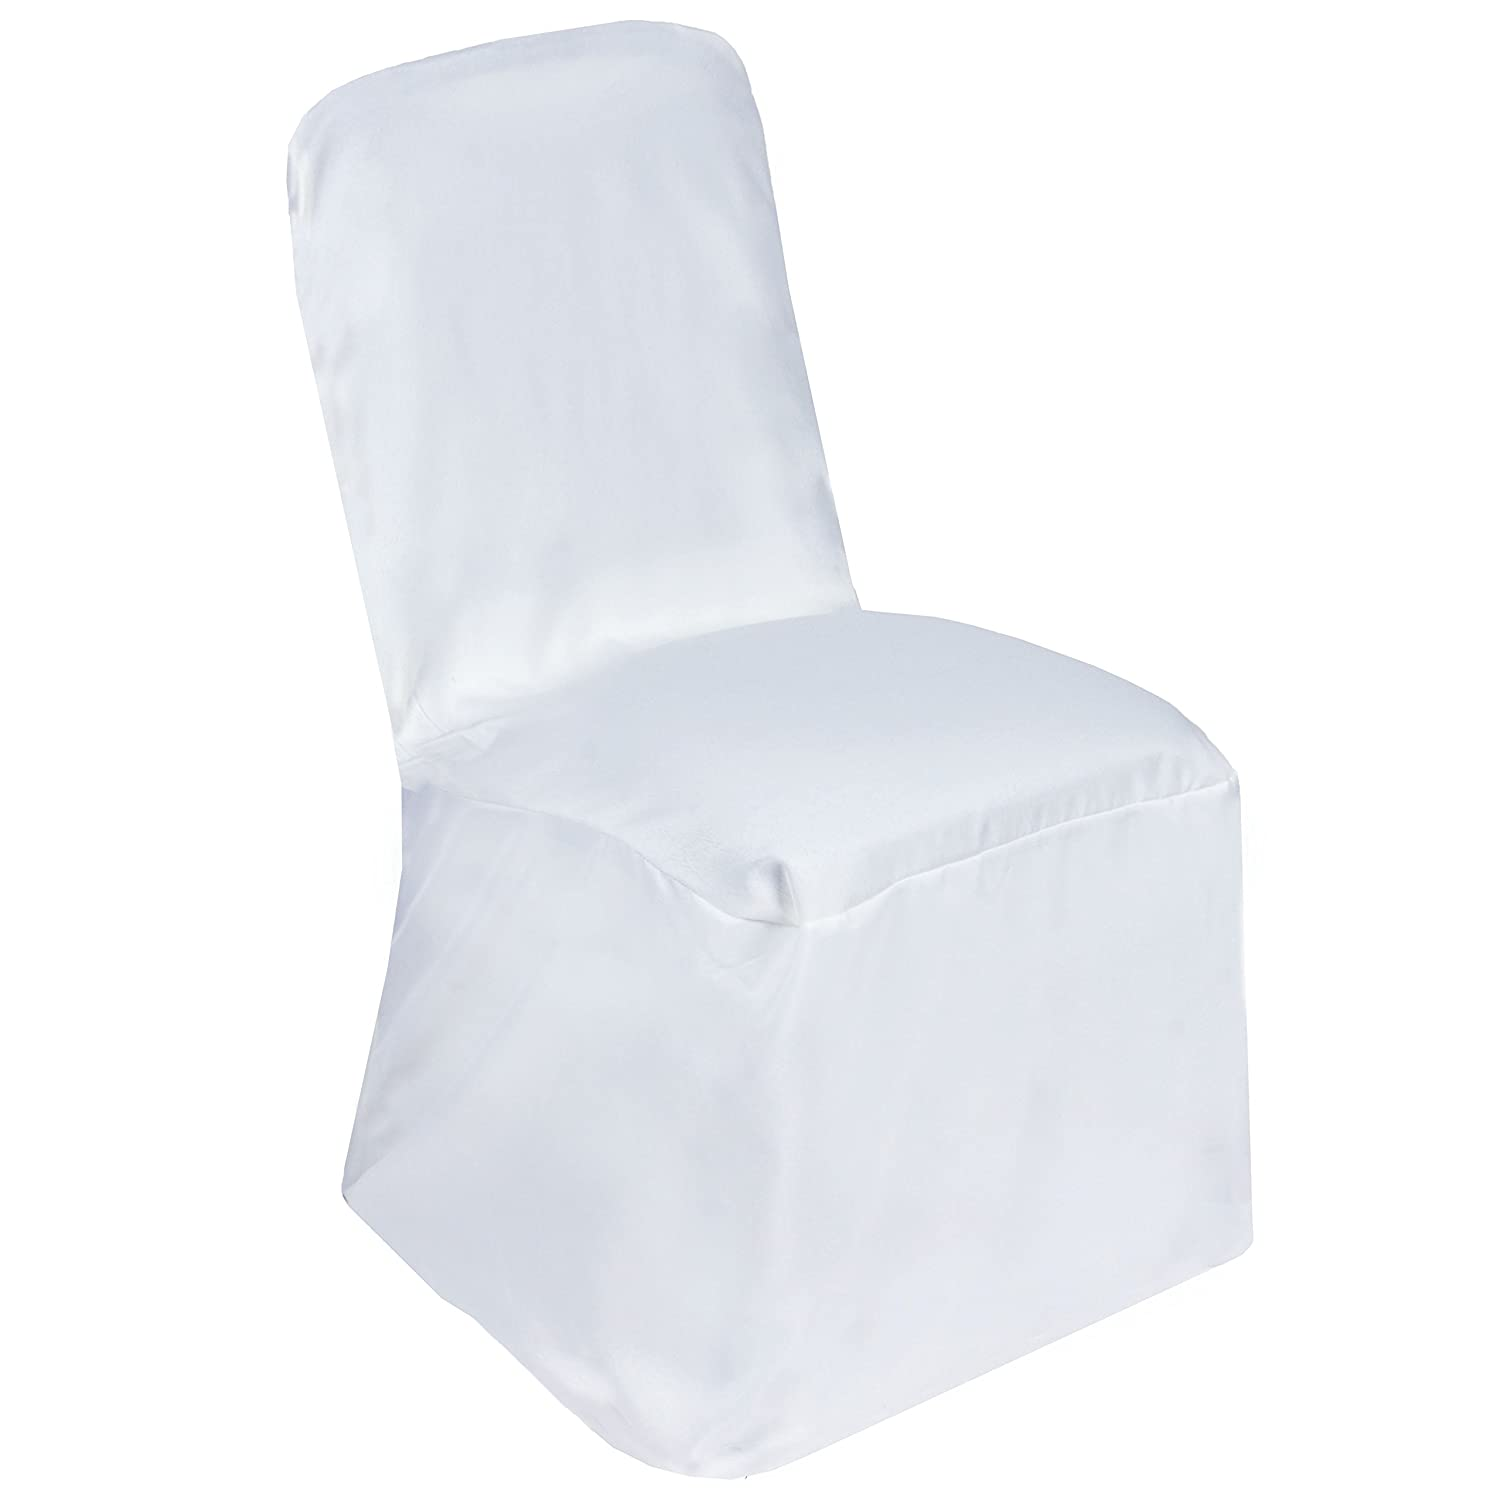 Amazon.com: balsacircle 10 pcs poliéster Banquet Chair ...